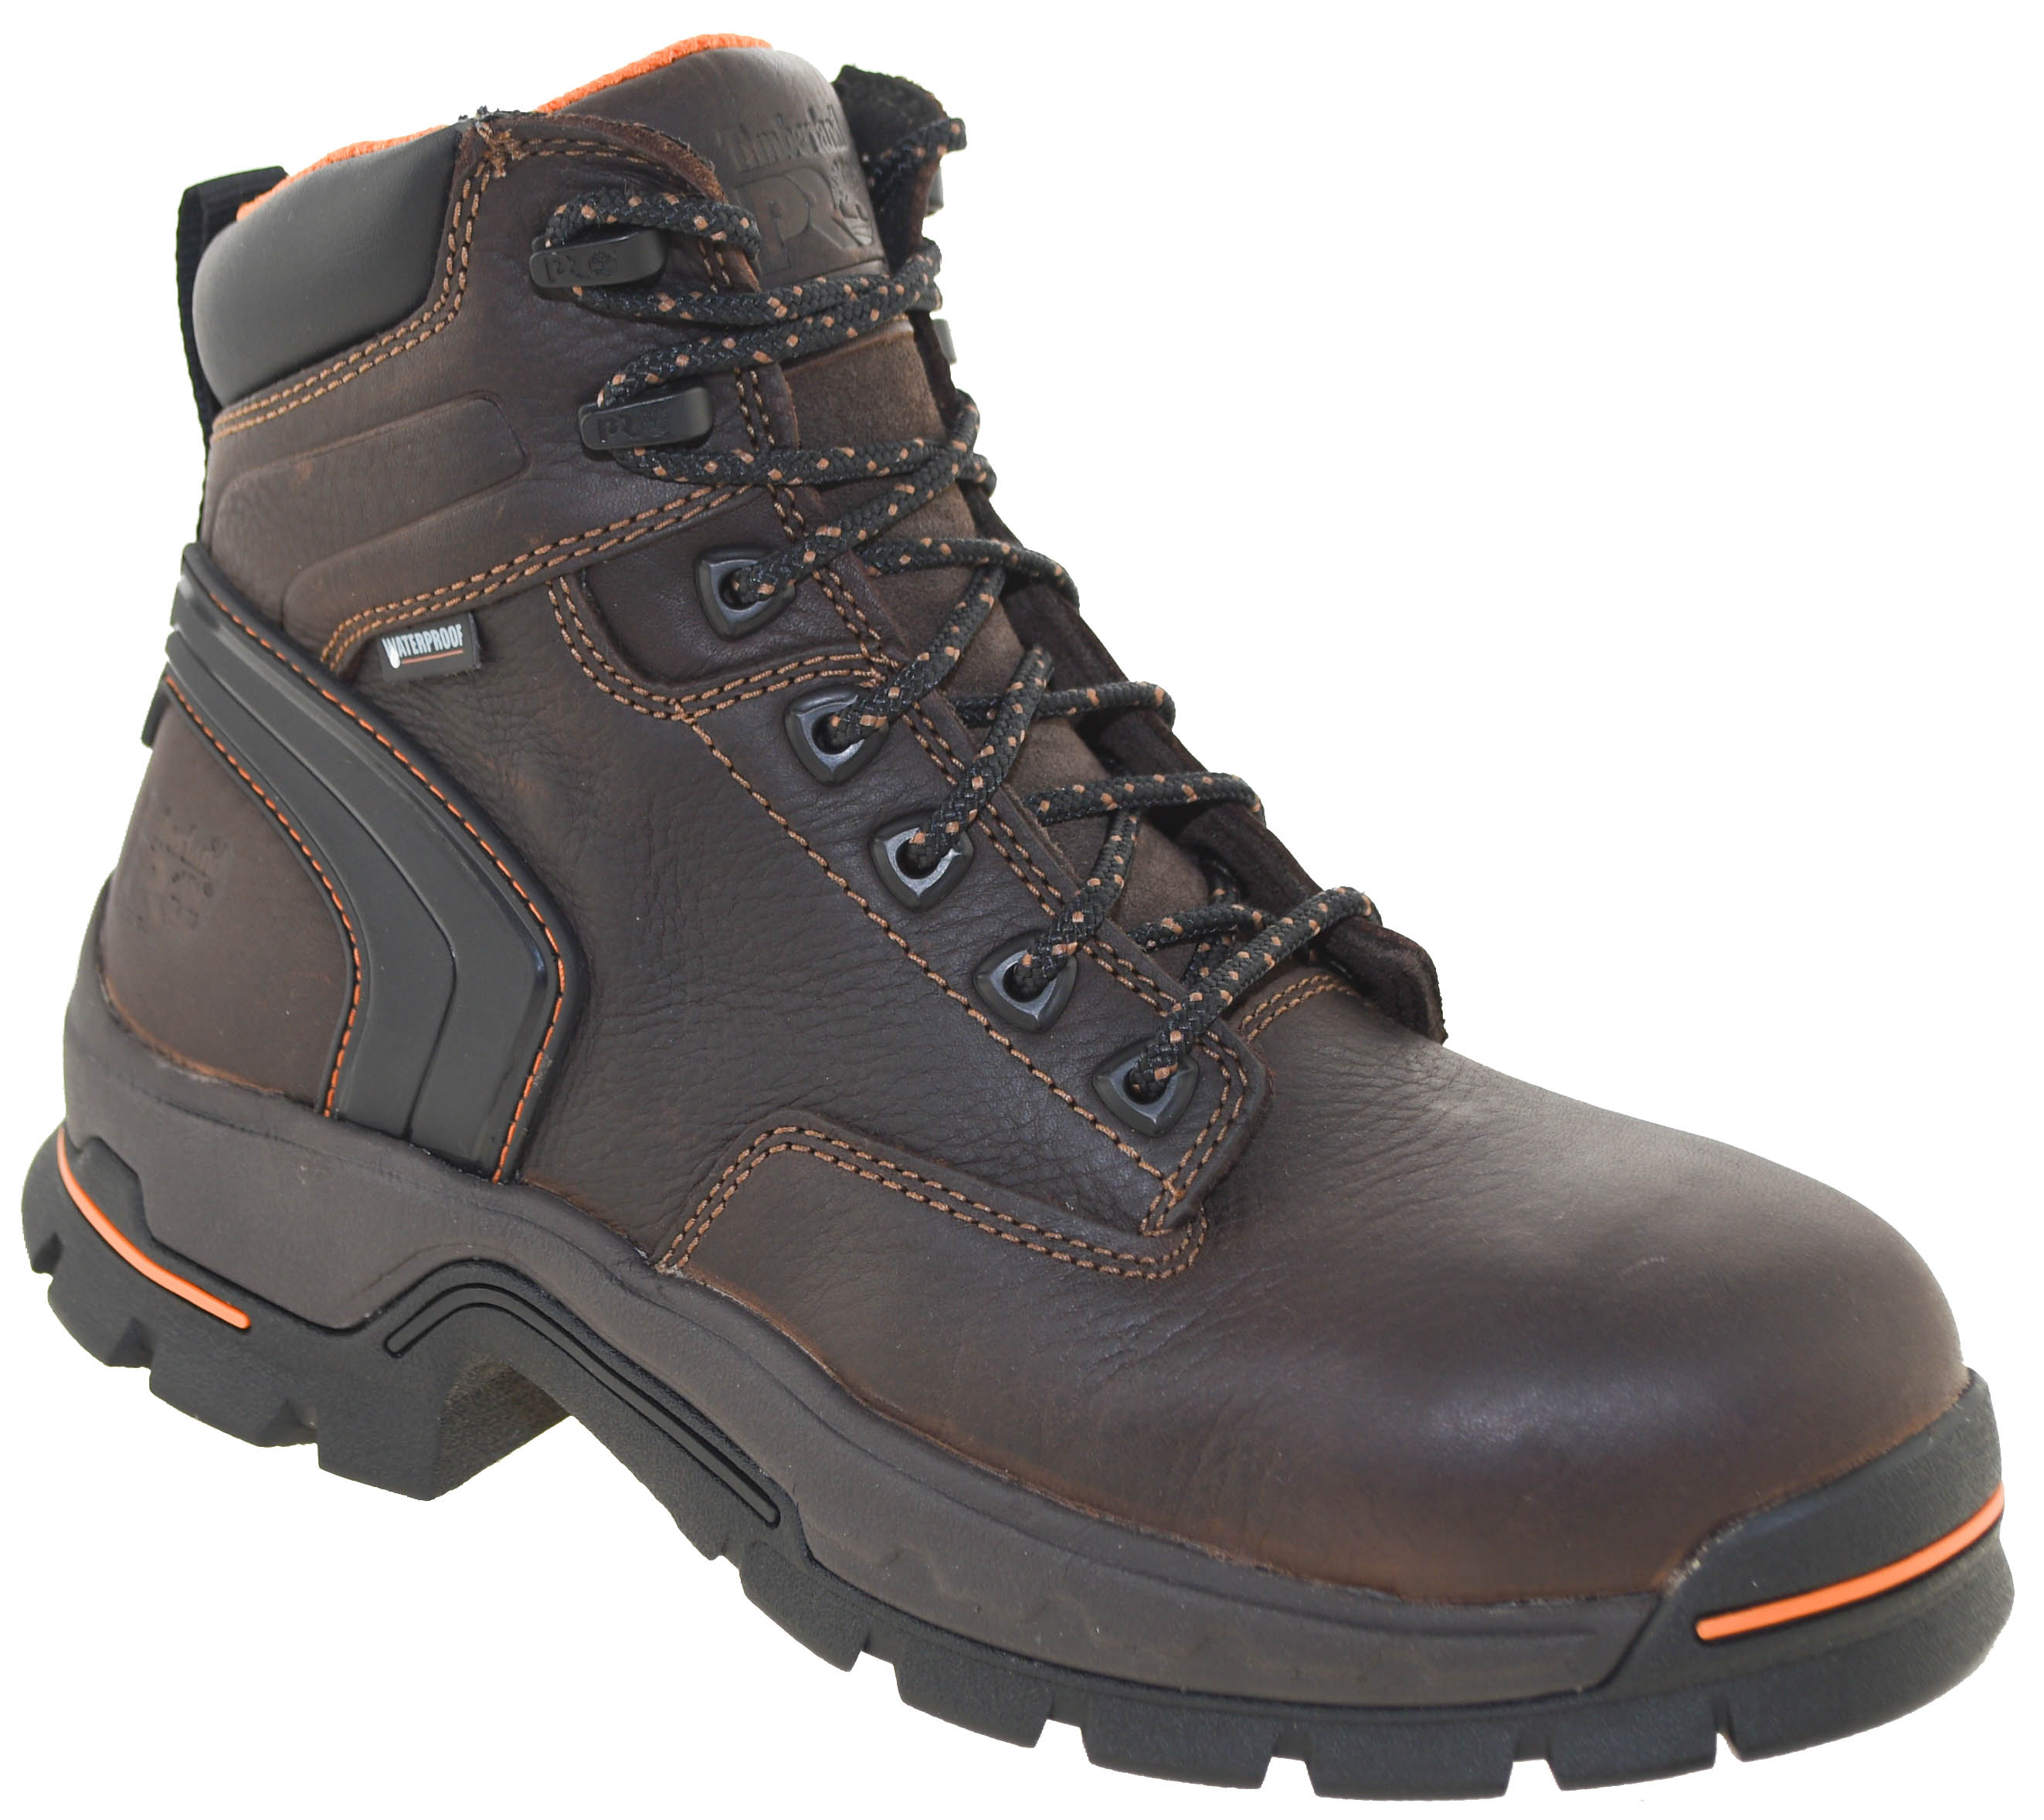 a7ca7b0f7cc Details about Timberland Pro Men's Stockdale 6